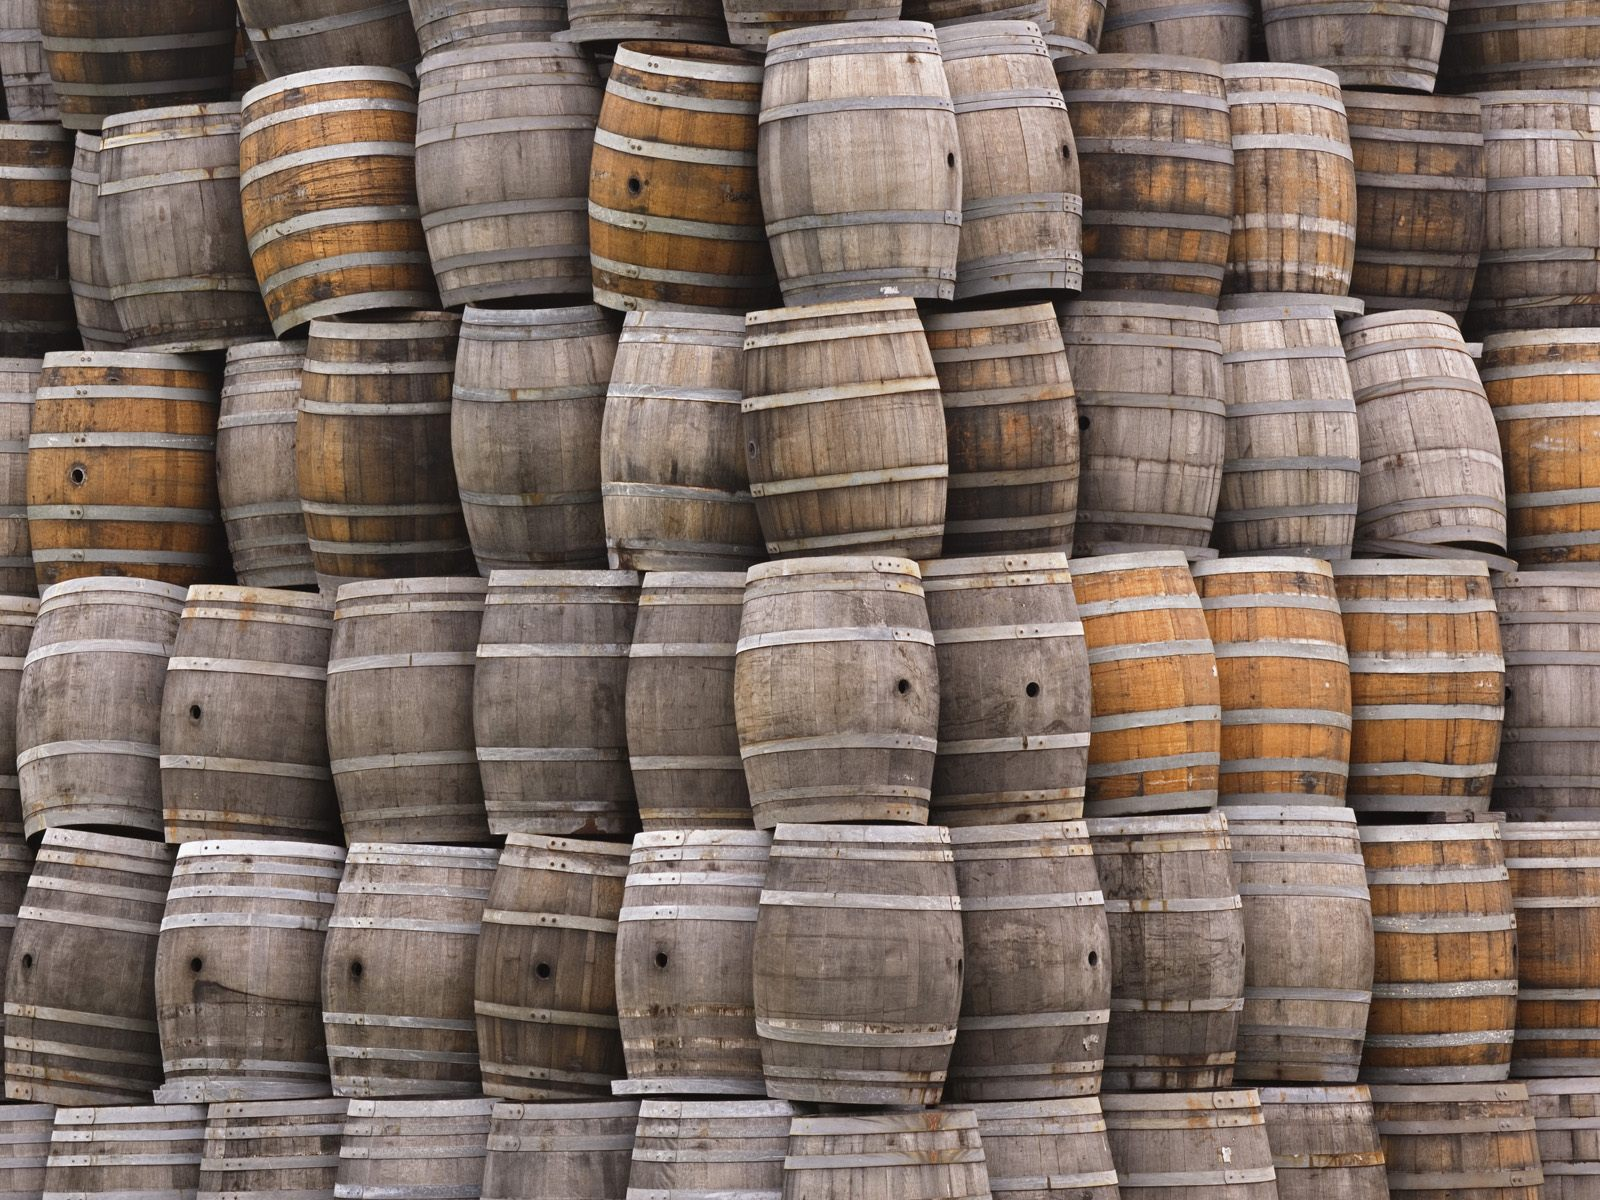 stacked_wine_barrels_napa_valley_california.jpg